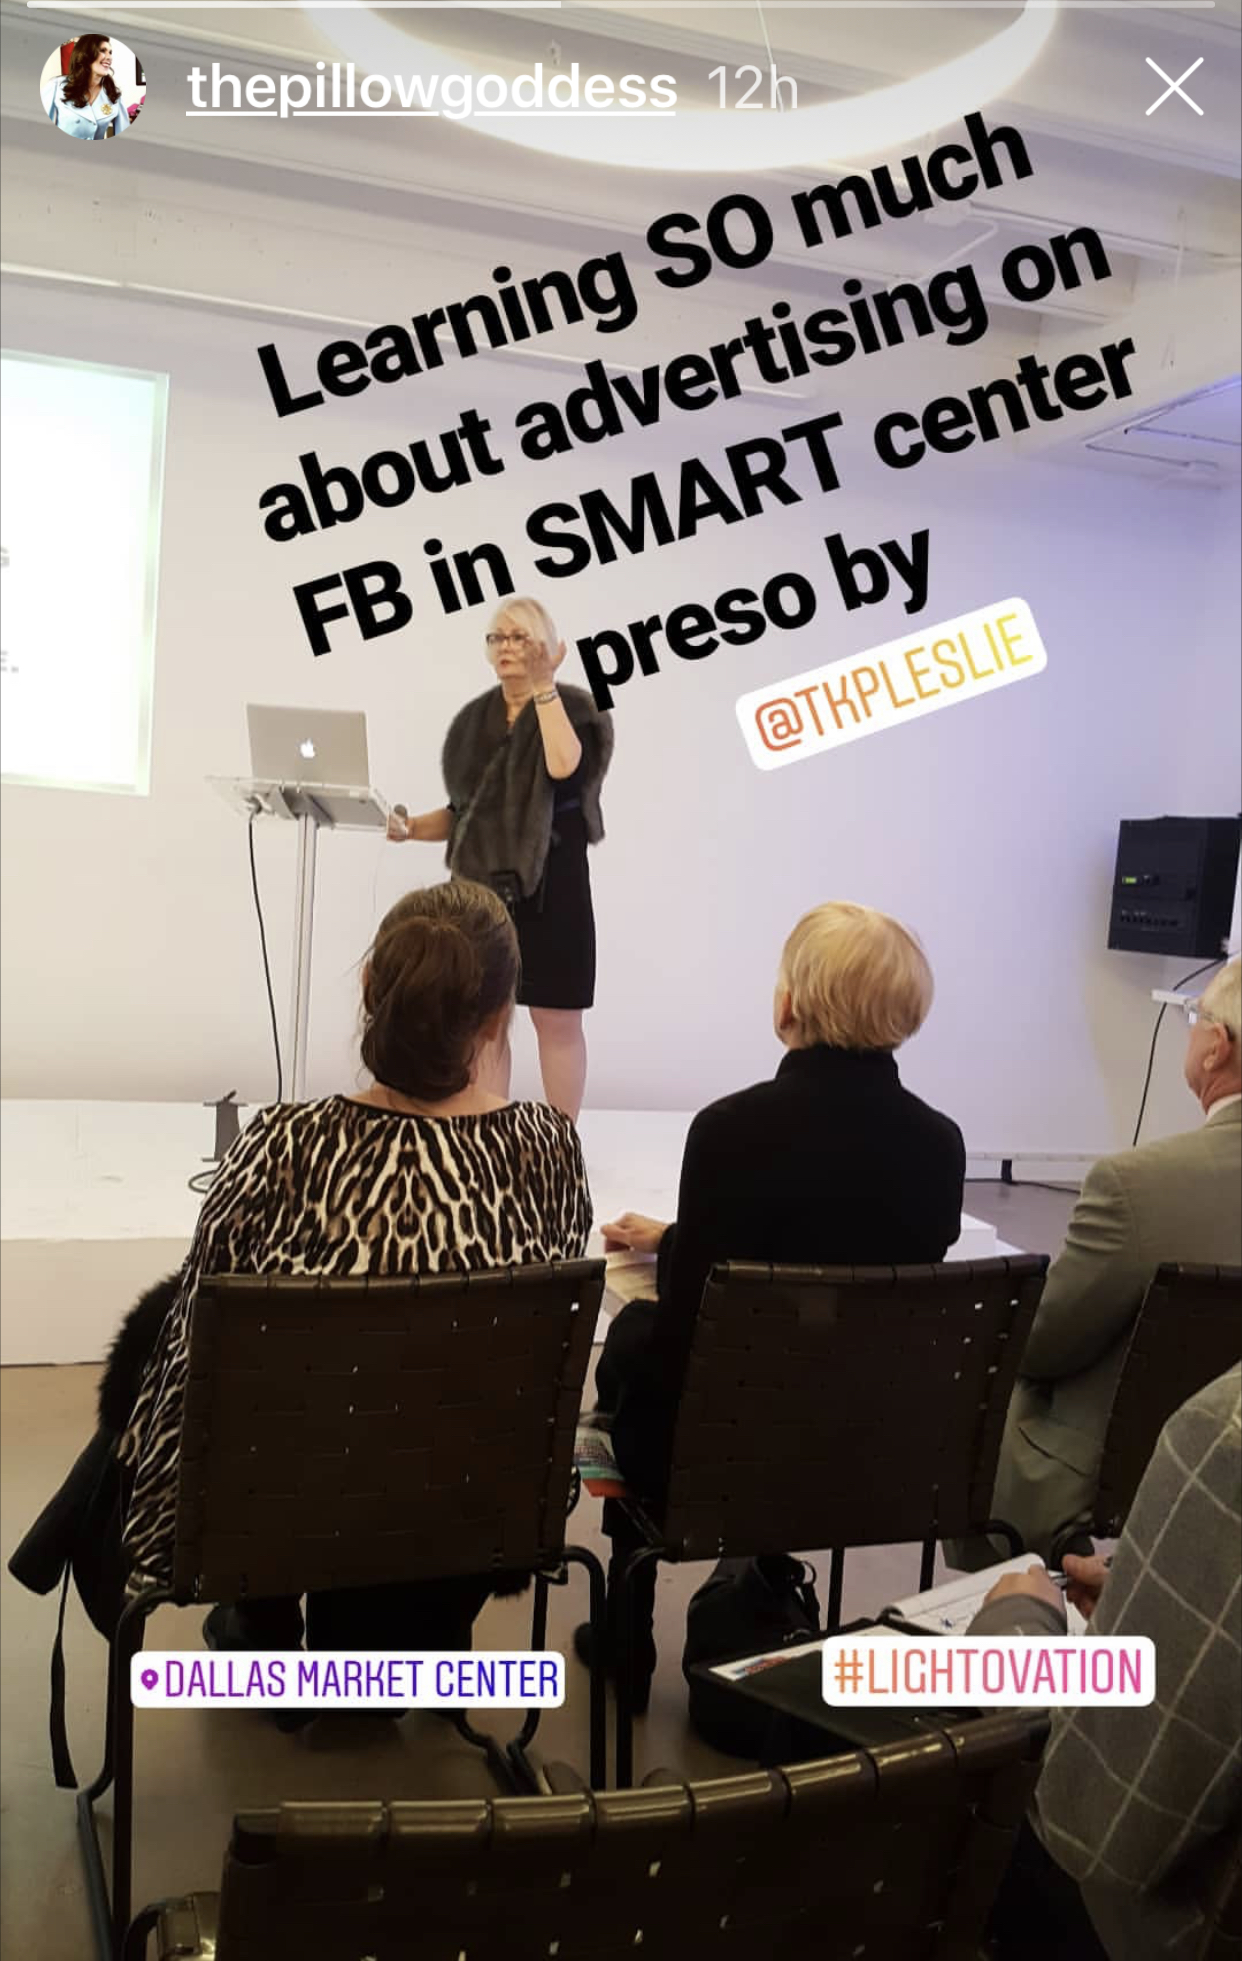 Leslie Carothers, CEO of Savour Partnership and The Kaleidoscope Partnership, speaking about Facebook advertising in the Smart Center at Lightovation 2019 during Dallas Market, as featured in Deborah Main's Insta Story .jpg